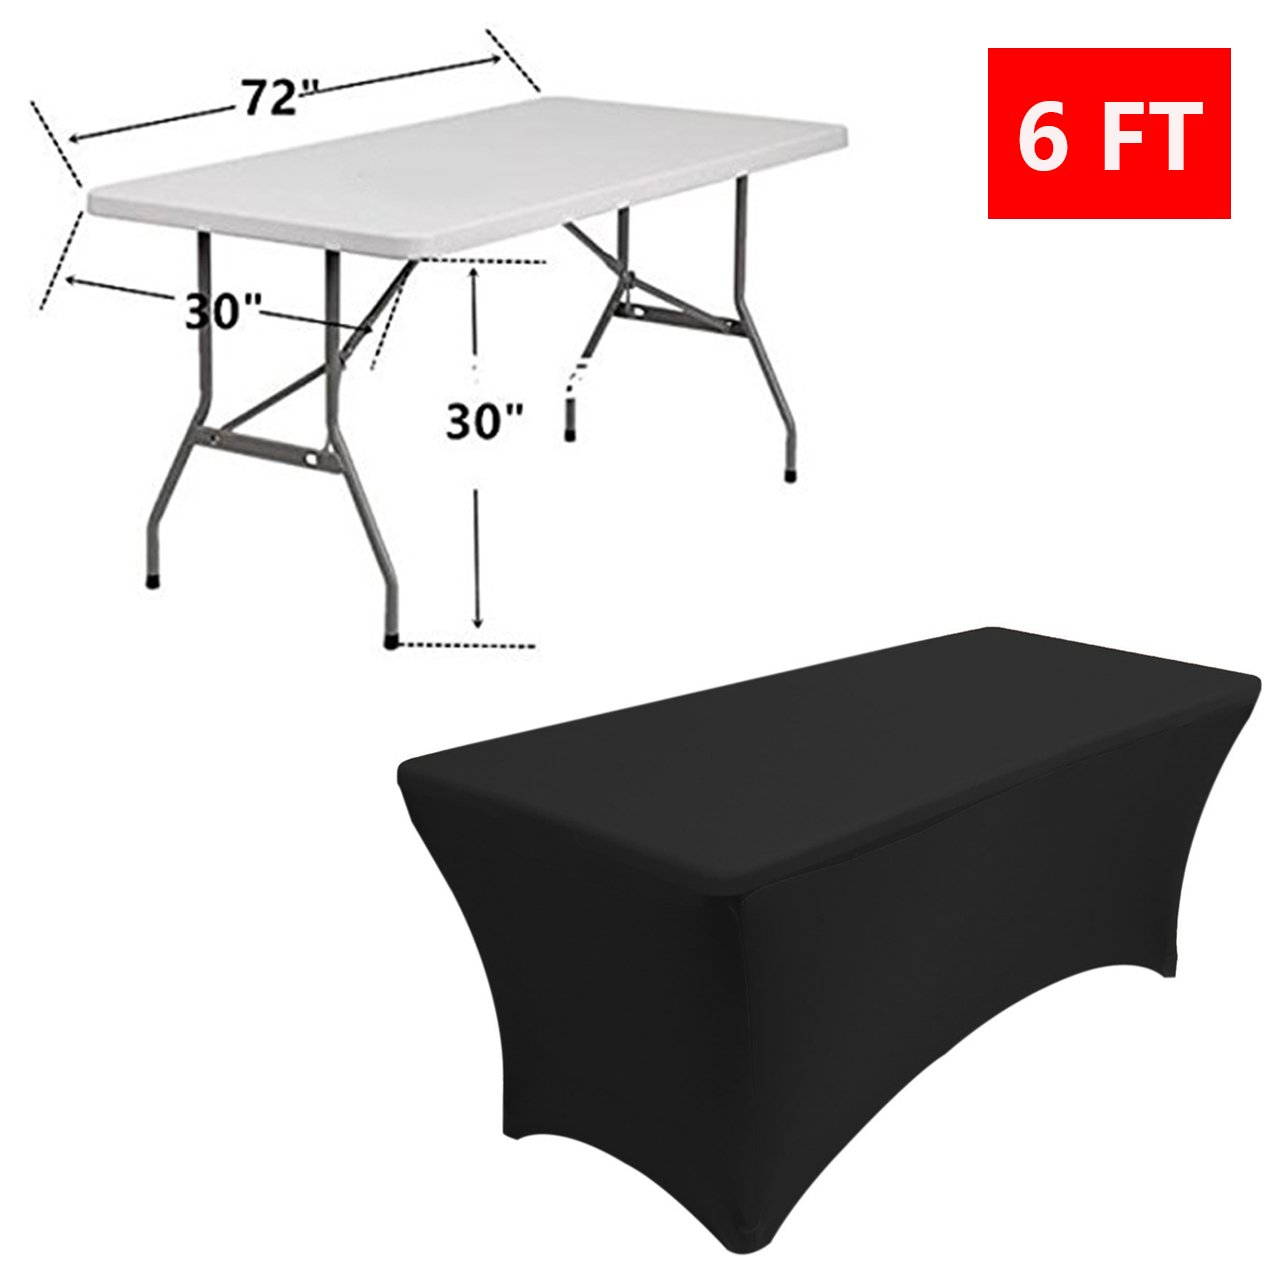 Reliancer 2 Pack 48FT Rectangular Spandex Table Cover Four-Way Tight Fitted Stretch Tablecloth Table Cloth for Outdoor Party DJ Tradeshows Banquet Vendors Weddings Celebrations (6FT, Black) by Reliancer (Image #4)